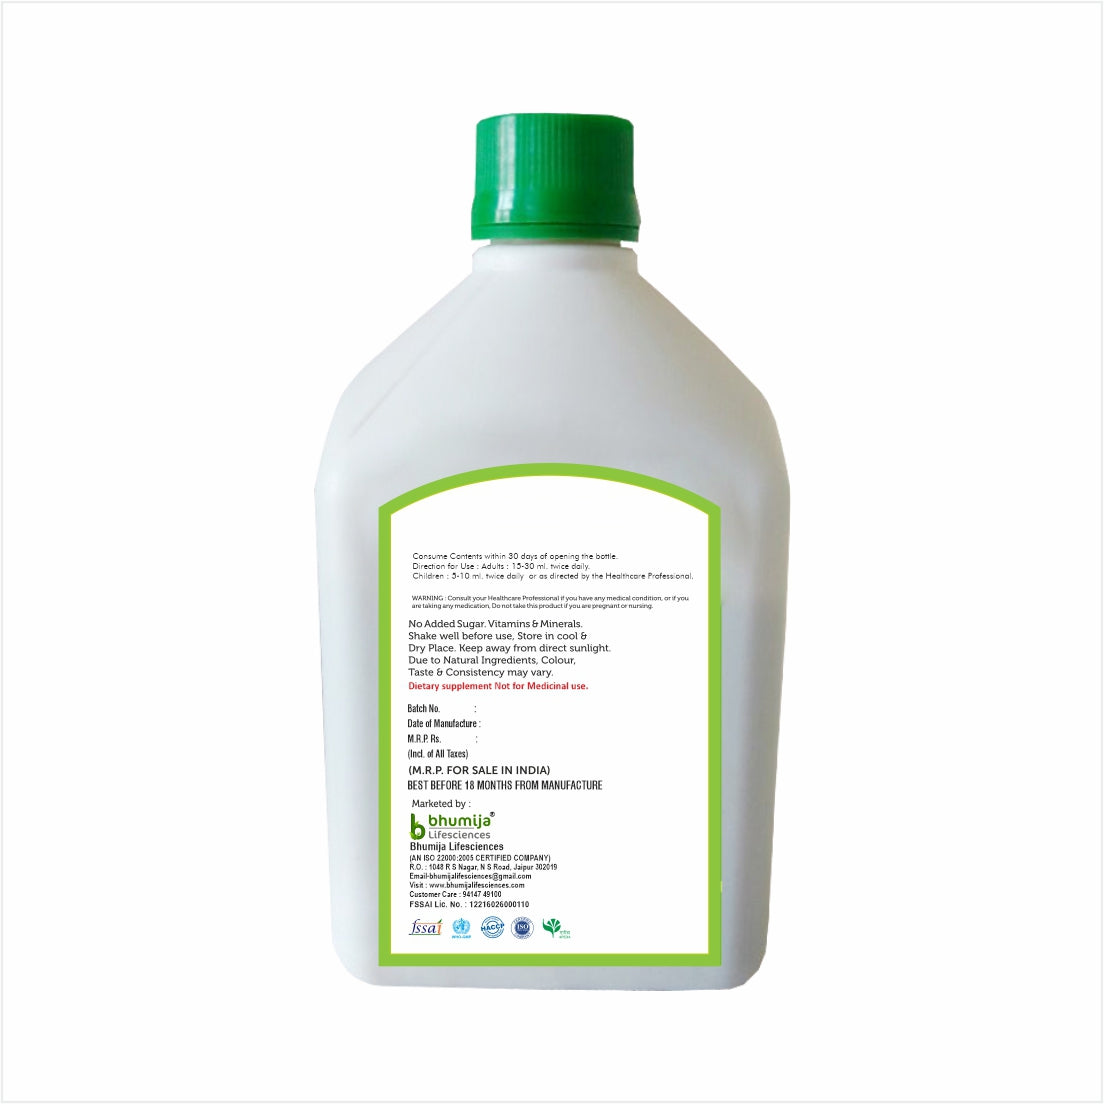 Bhumija Lifesciences Aloe Vera Juice (with Pulp) Natural Juice Skin and Hair 1 Ltr.